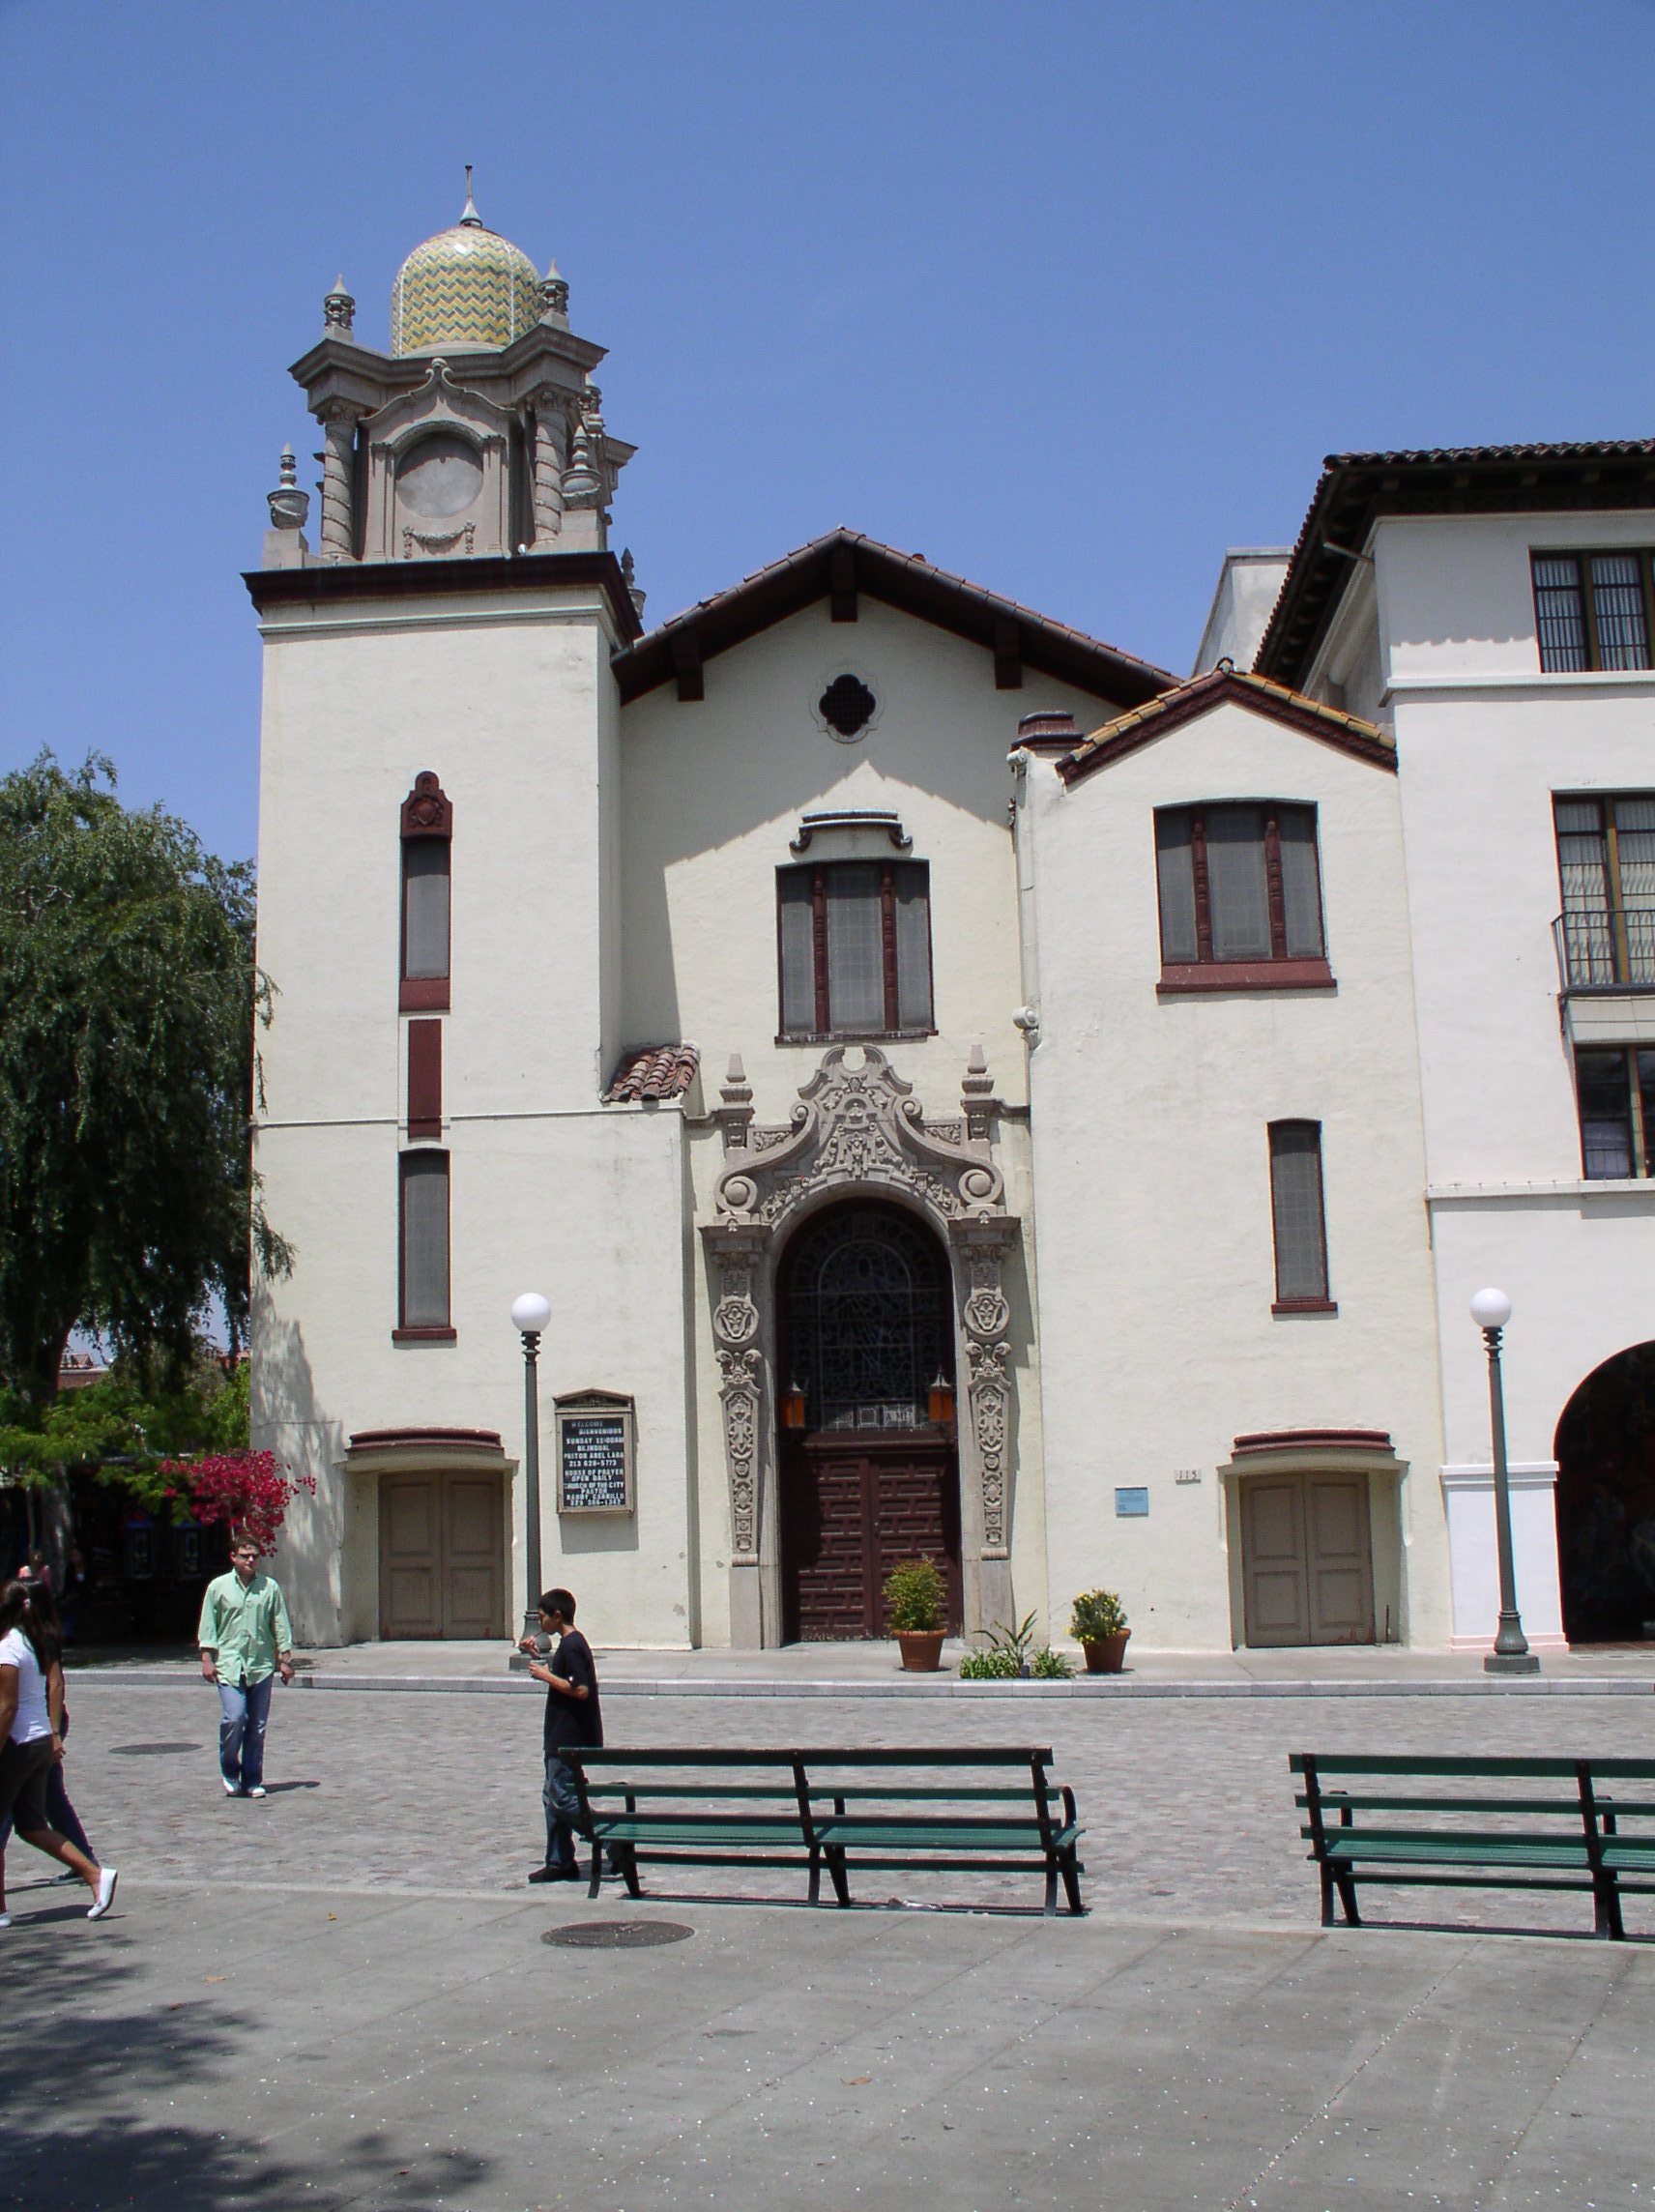 Spanish colonial architecture characteristics - Los Angeles